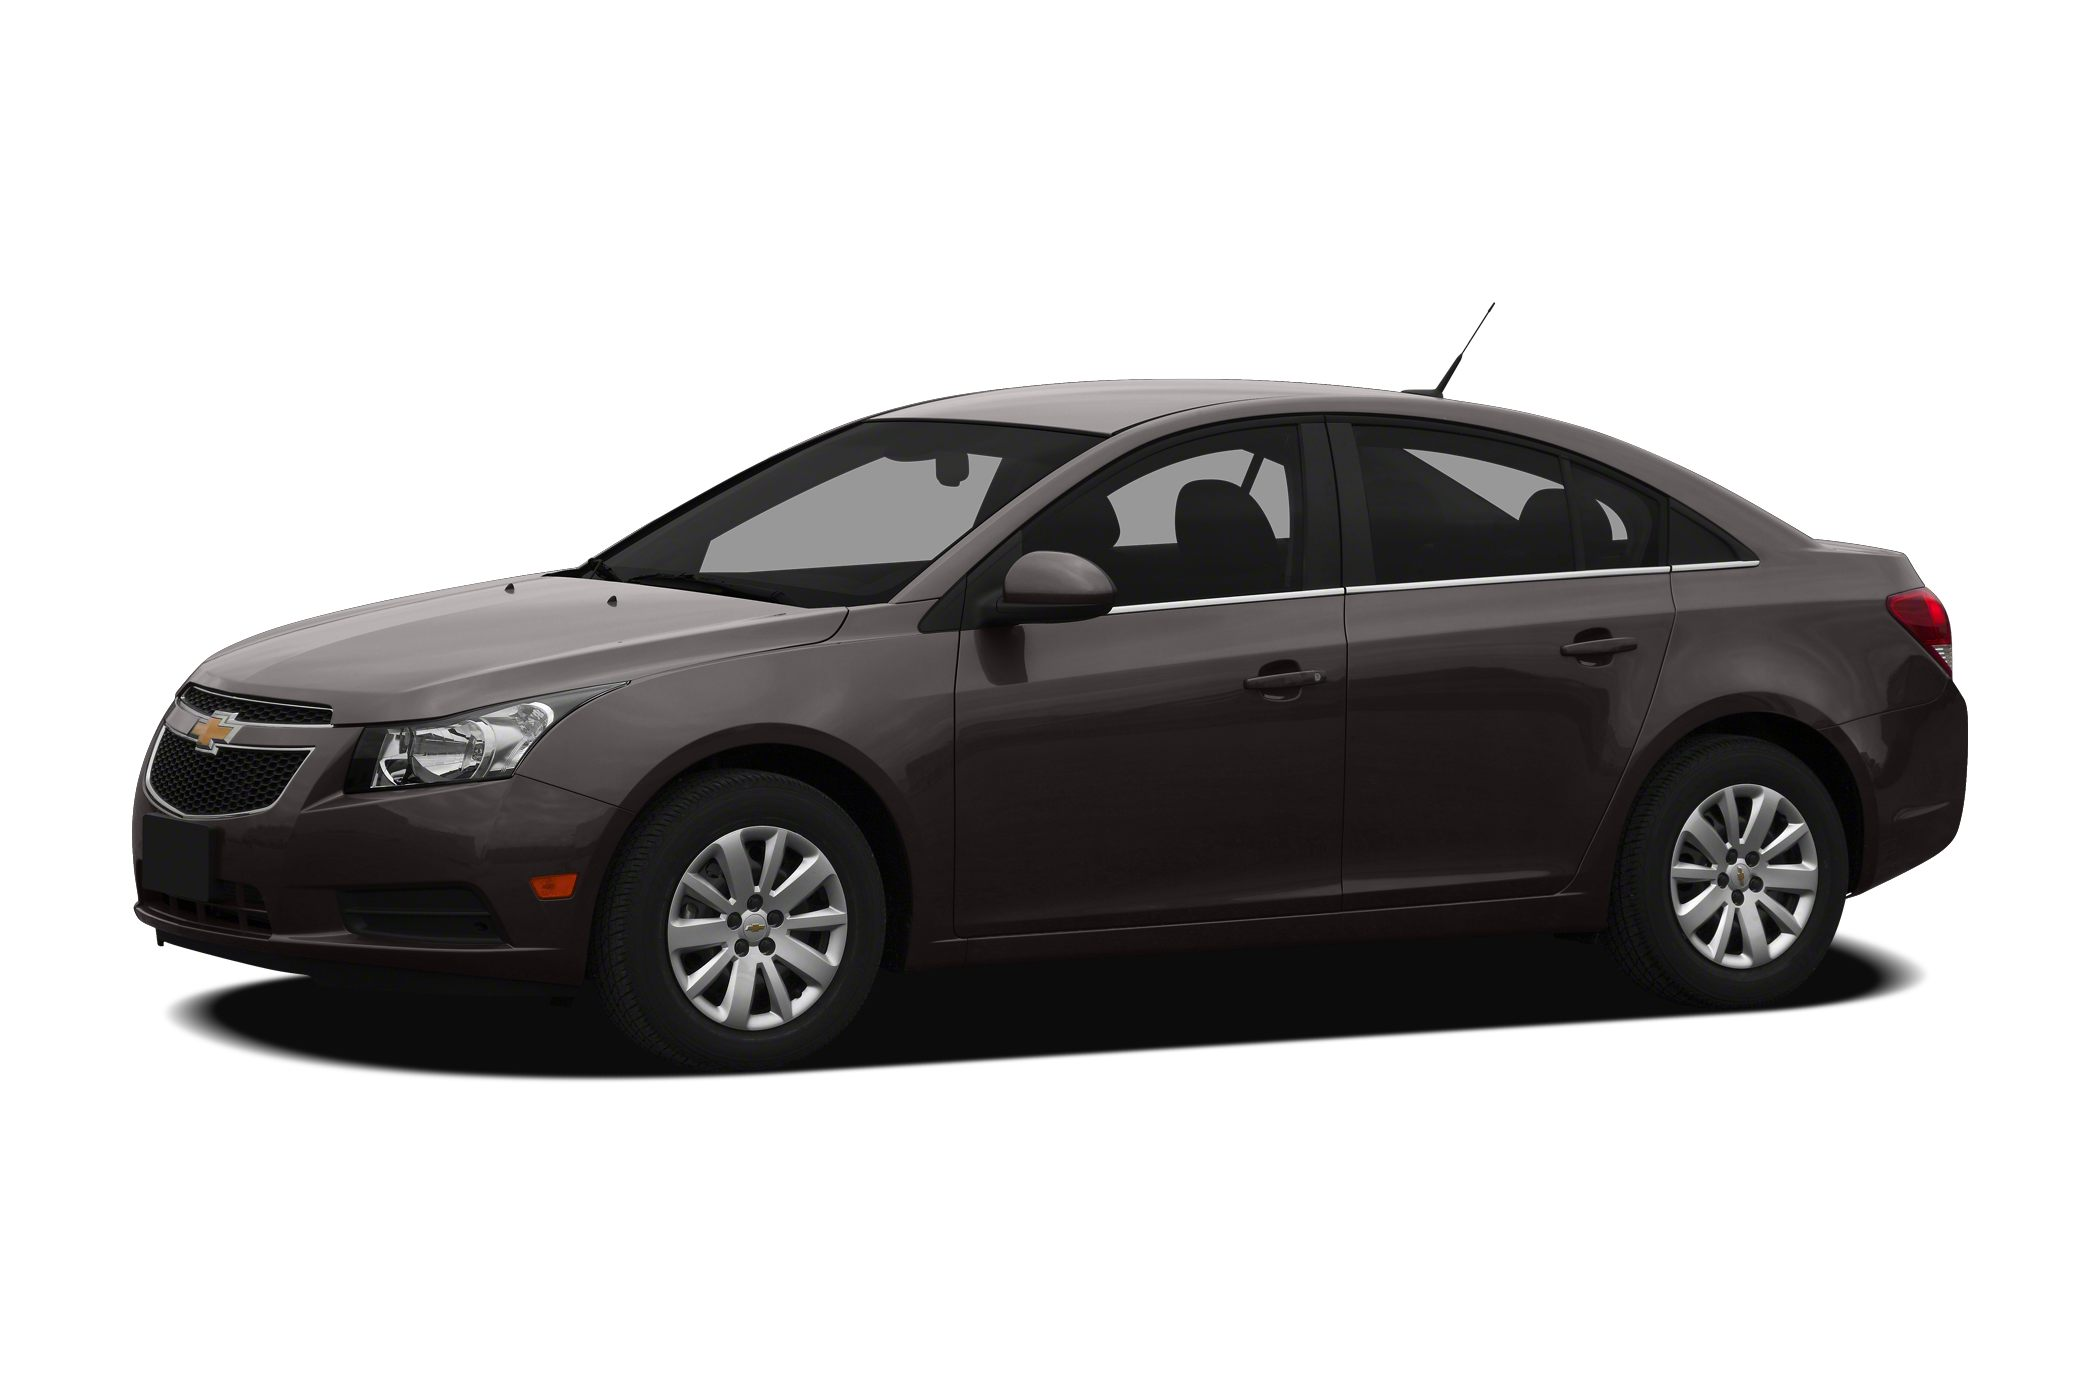 2012 Chevrolet Cruze LT Sedan for sale in Porterville for $14,000 with 38,029 miles.